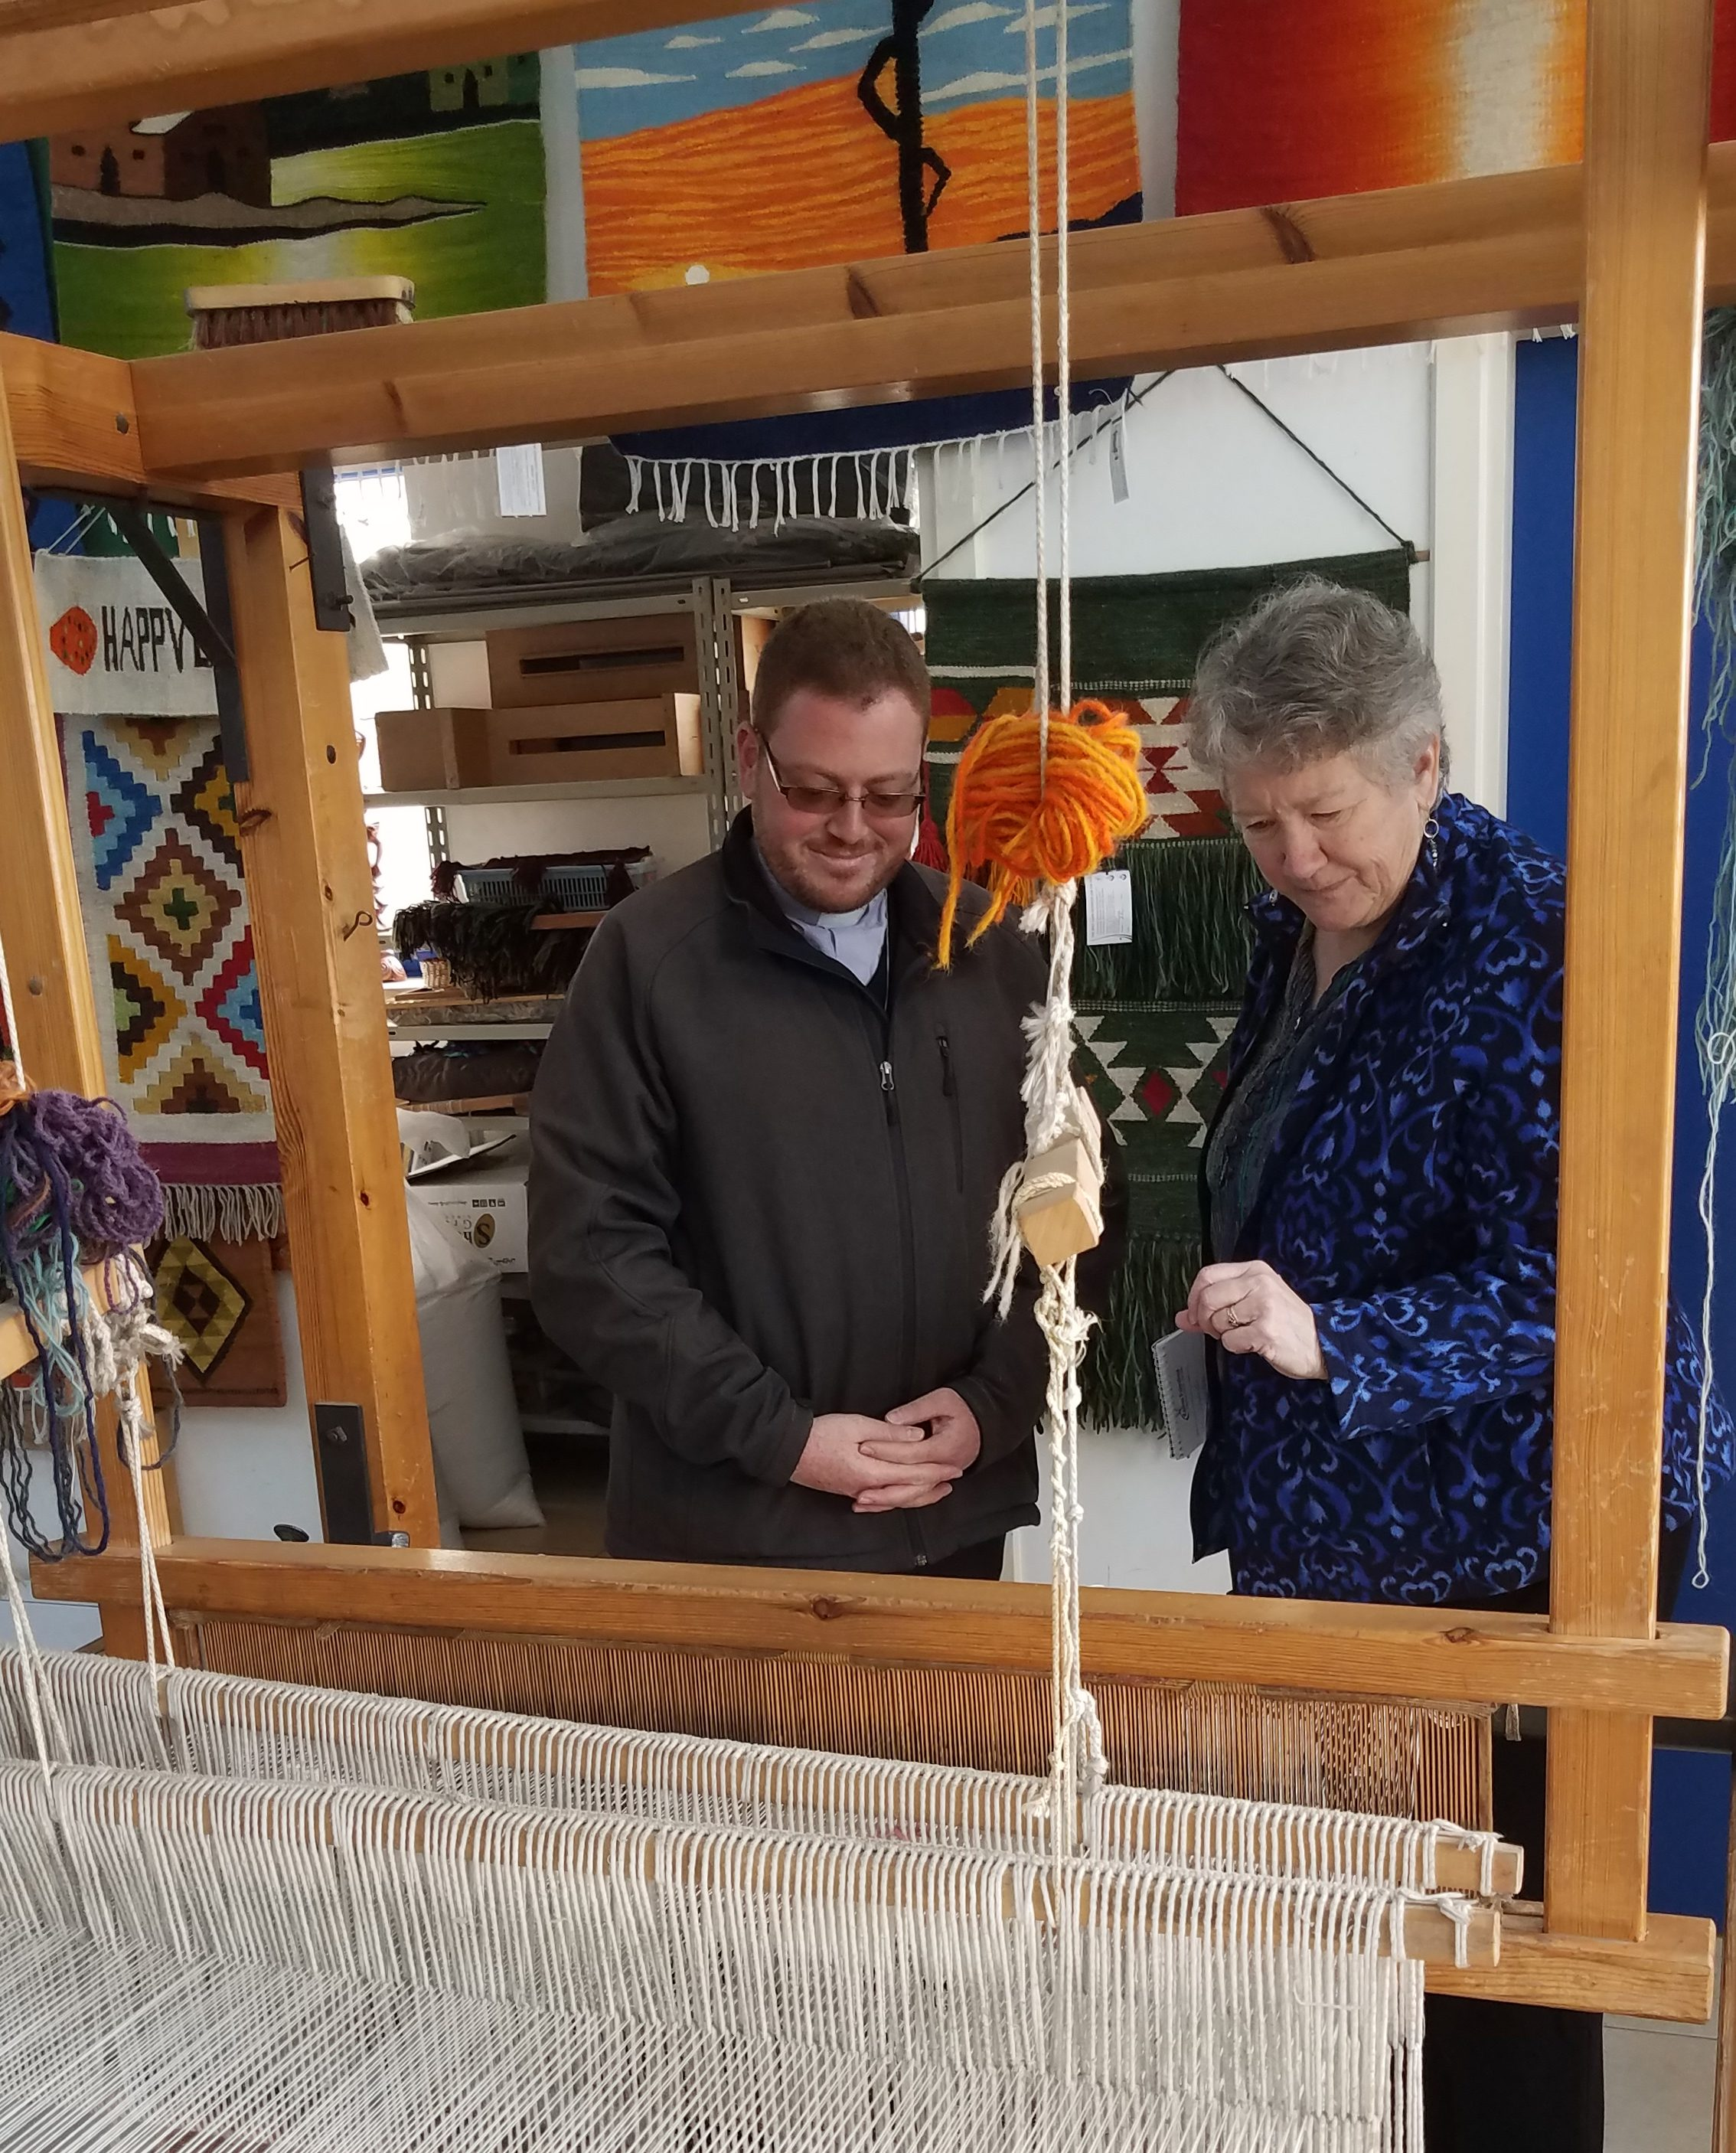 Fr. Wadie Far of HLID shows Doni Heyn-Lamb the looms used by vocational students at Holy Land Institute for the Deaf